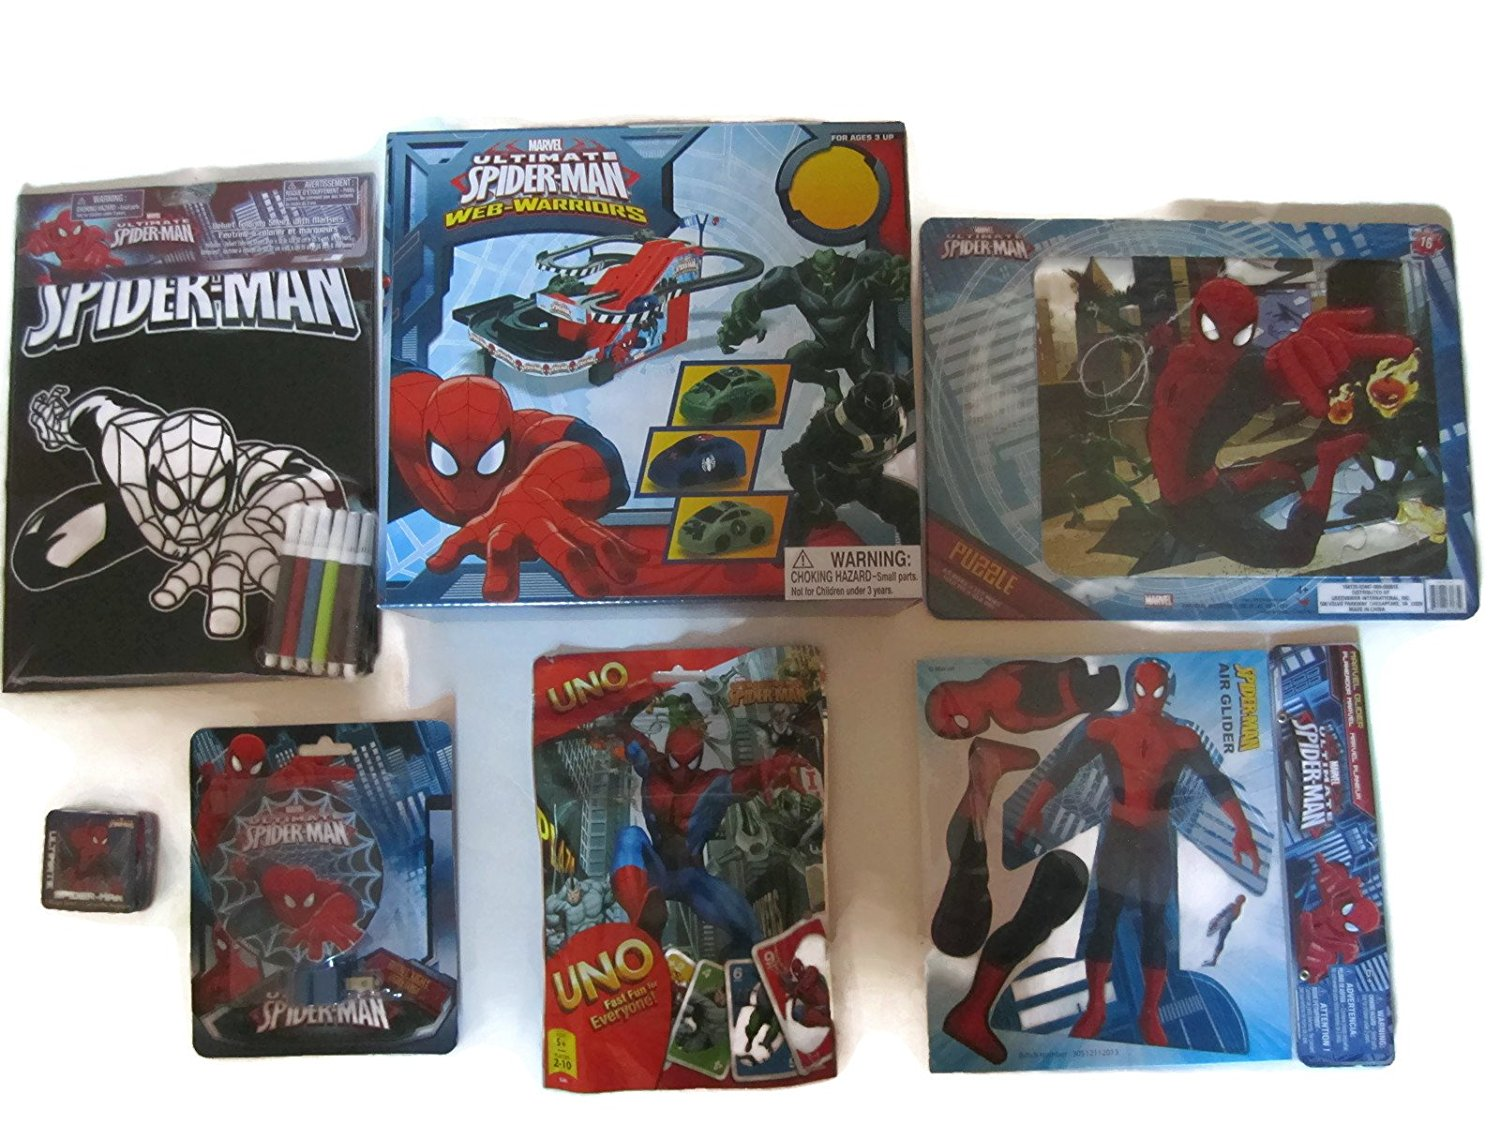 Spider-Man Ultimate Fun Bundle - 1 x Ultimate Spider-Man Web-Warriors Electric Race Set, Uno Cards, Glider, Velvet Coloring Sheet, 16pc Puzzle, Night Light & Magic Towel - (7 Items)